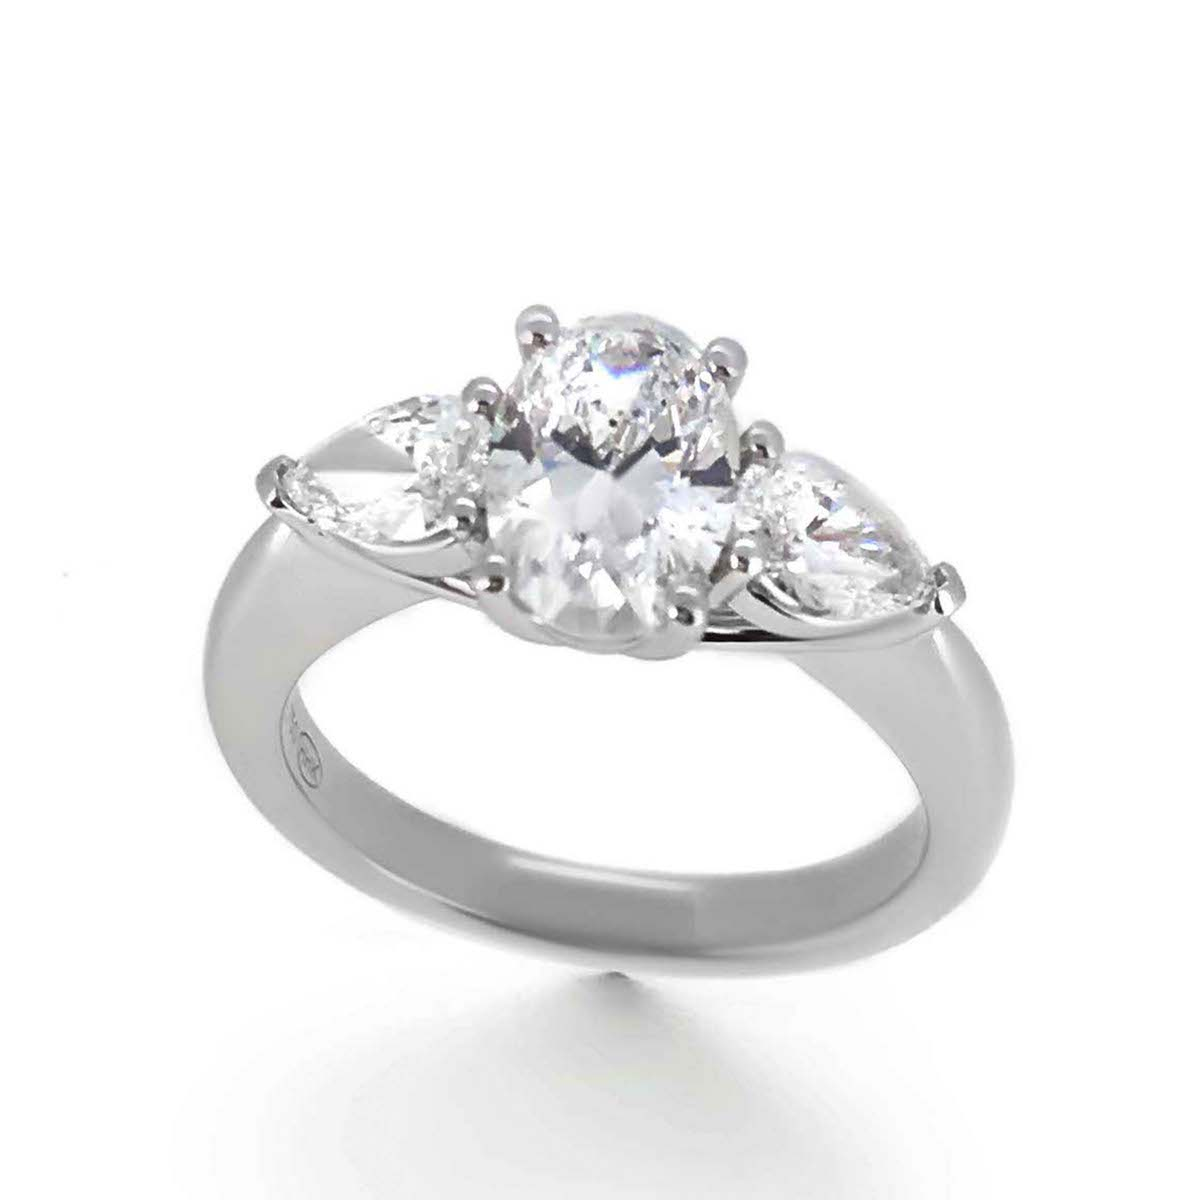 trilogy ring oval engagement kong rings and hong of haywards diamond product pears